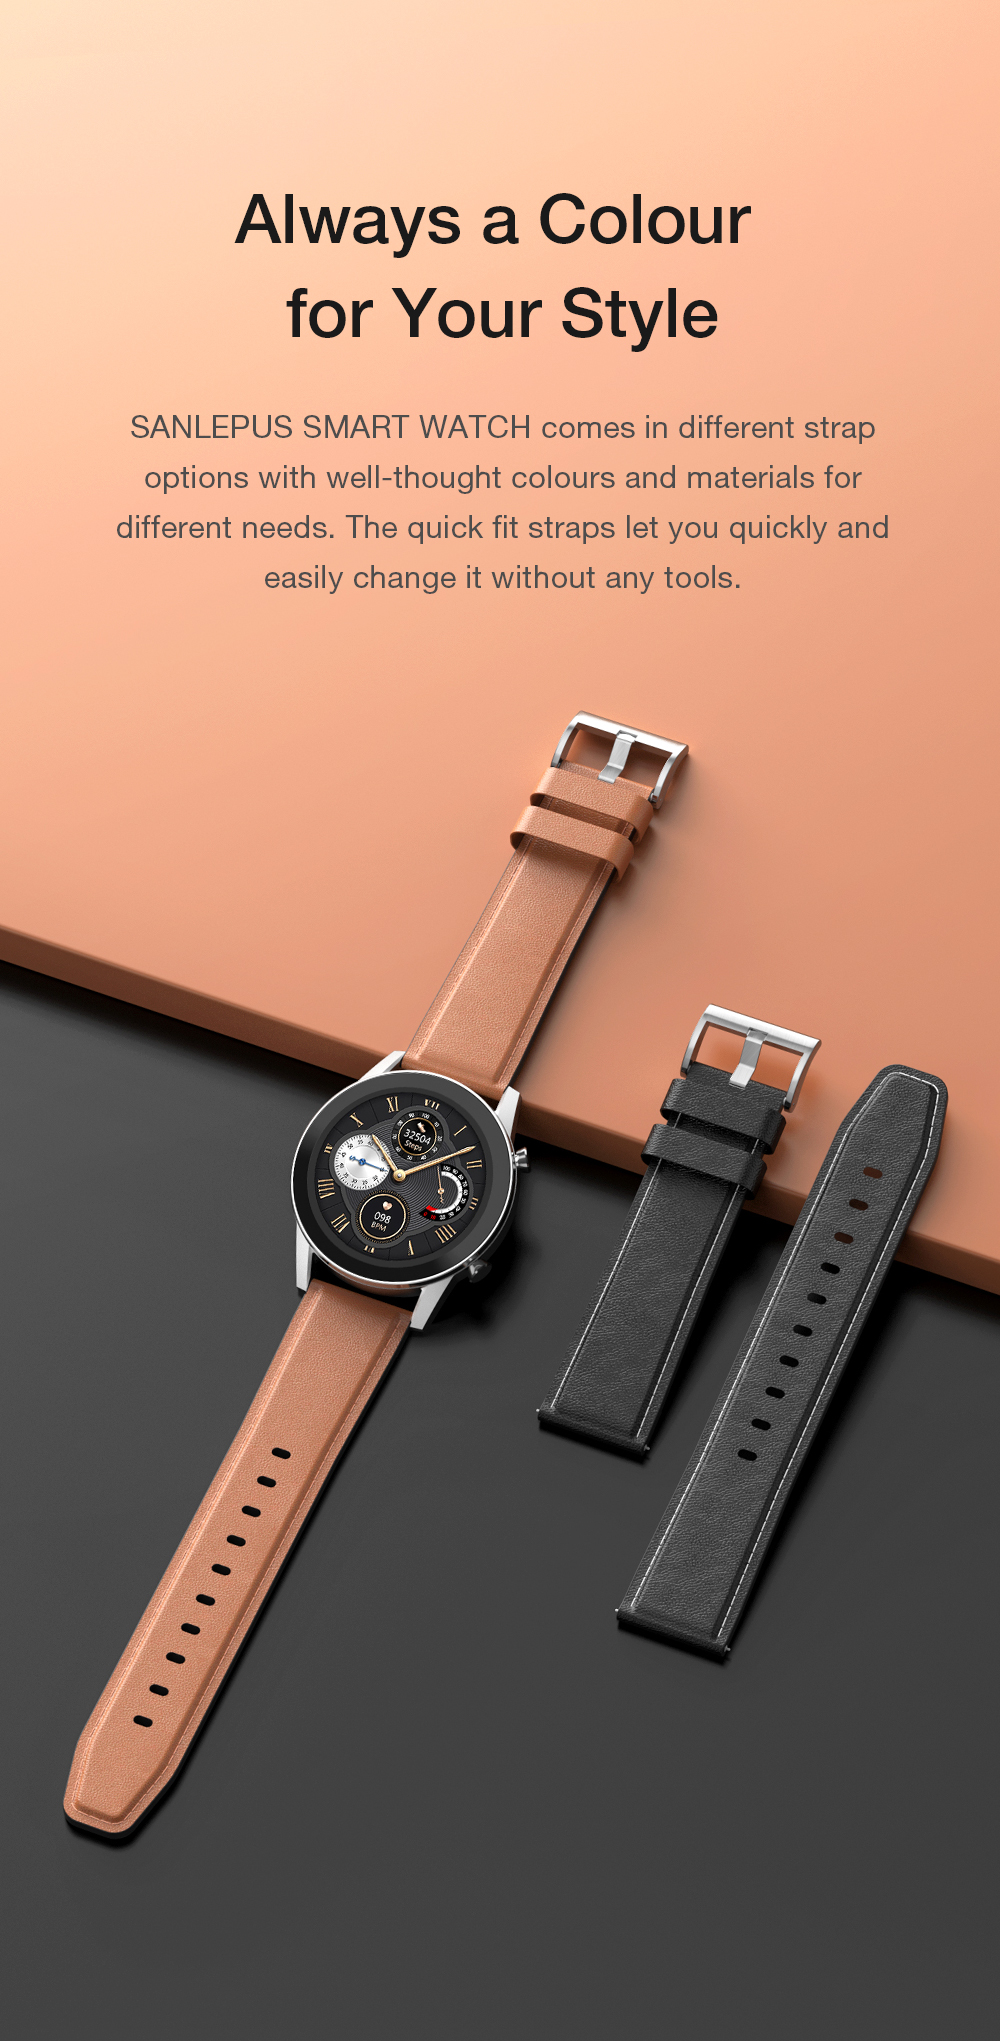 Hff9b073f6ad54b929ce4460f15eae5a60 2021 SANLEPUS ECG Smart Watch Dial Call Smartwatch Men Sport Fitness Bracelet Clock Watches For Android Apple Xiaomi